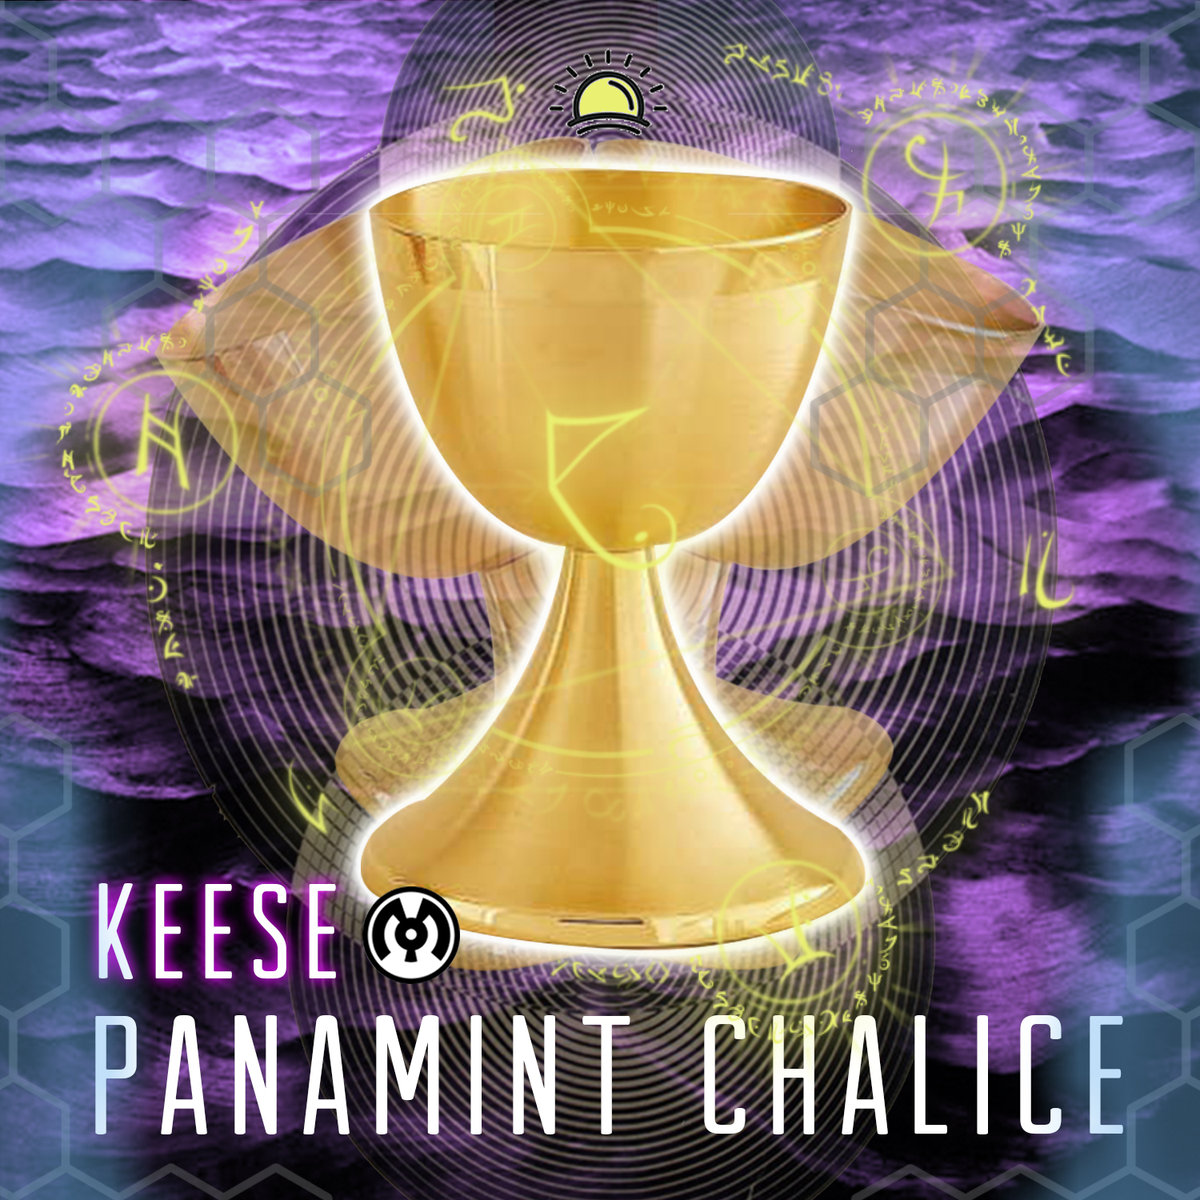 Keese - Love Yourself @ 'Panamint Chalice' album (electronic, dubstep)